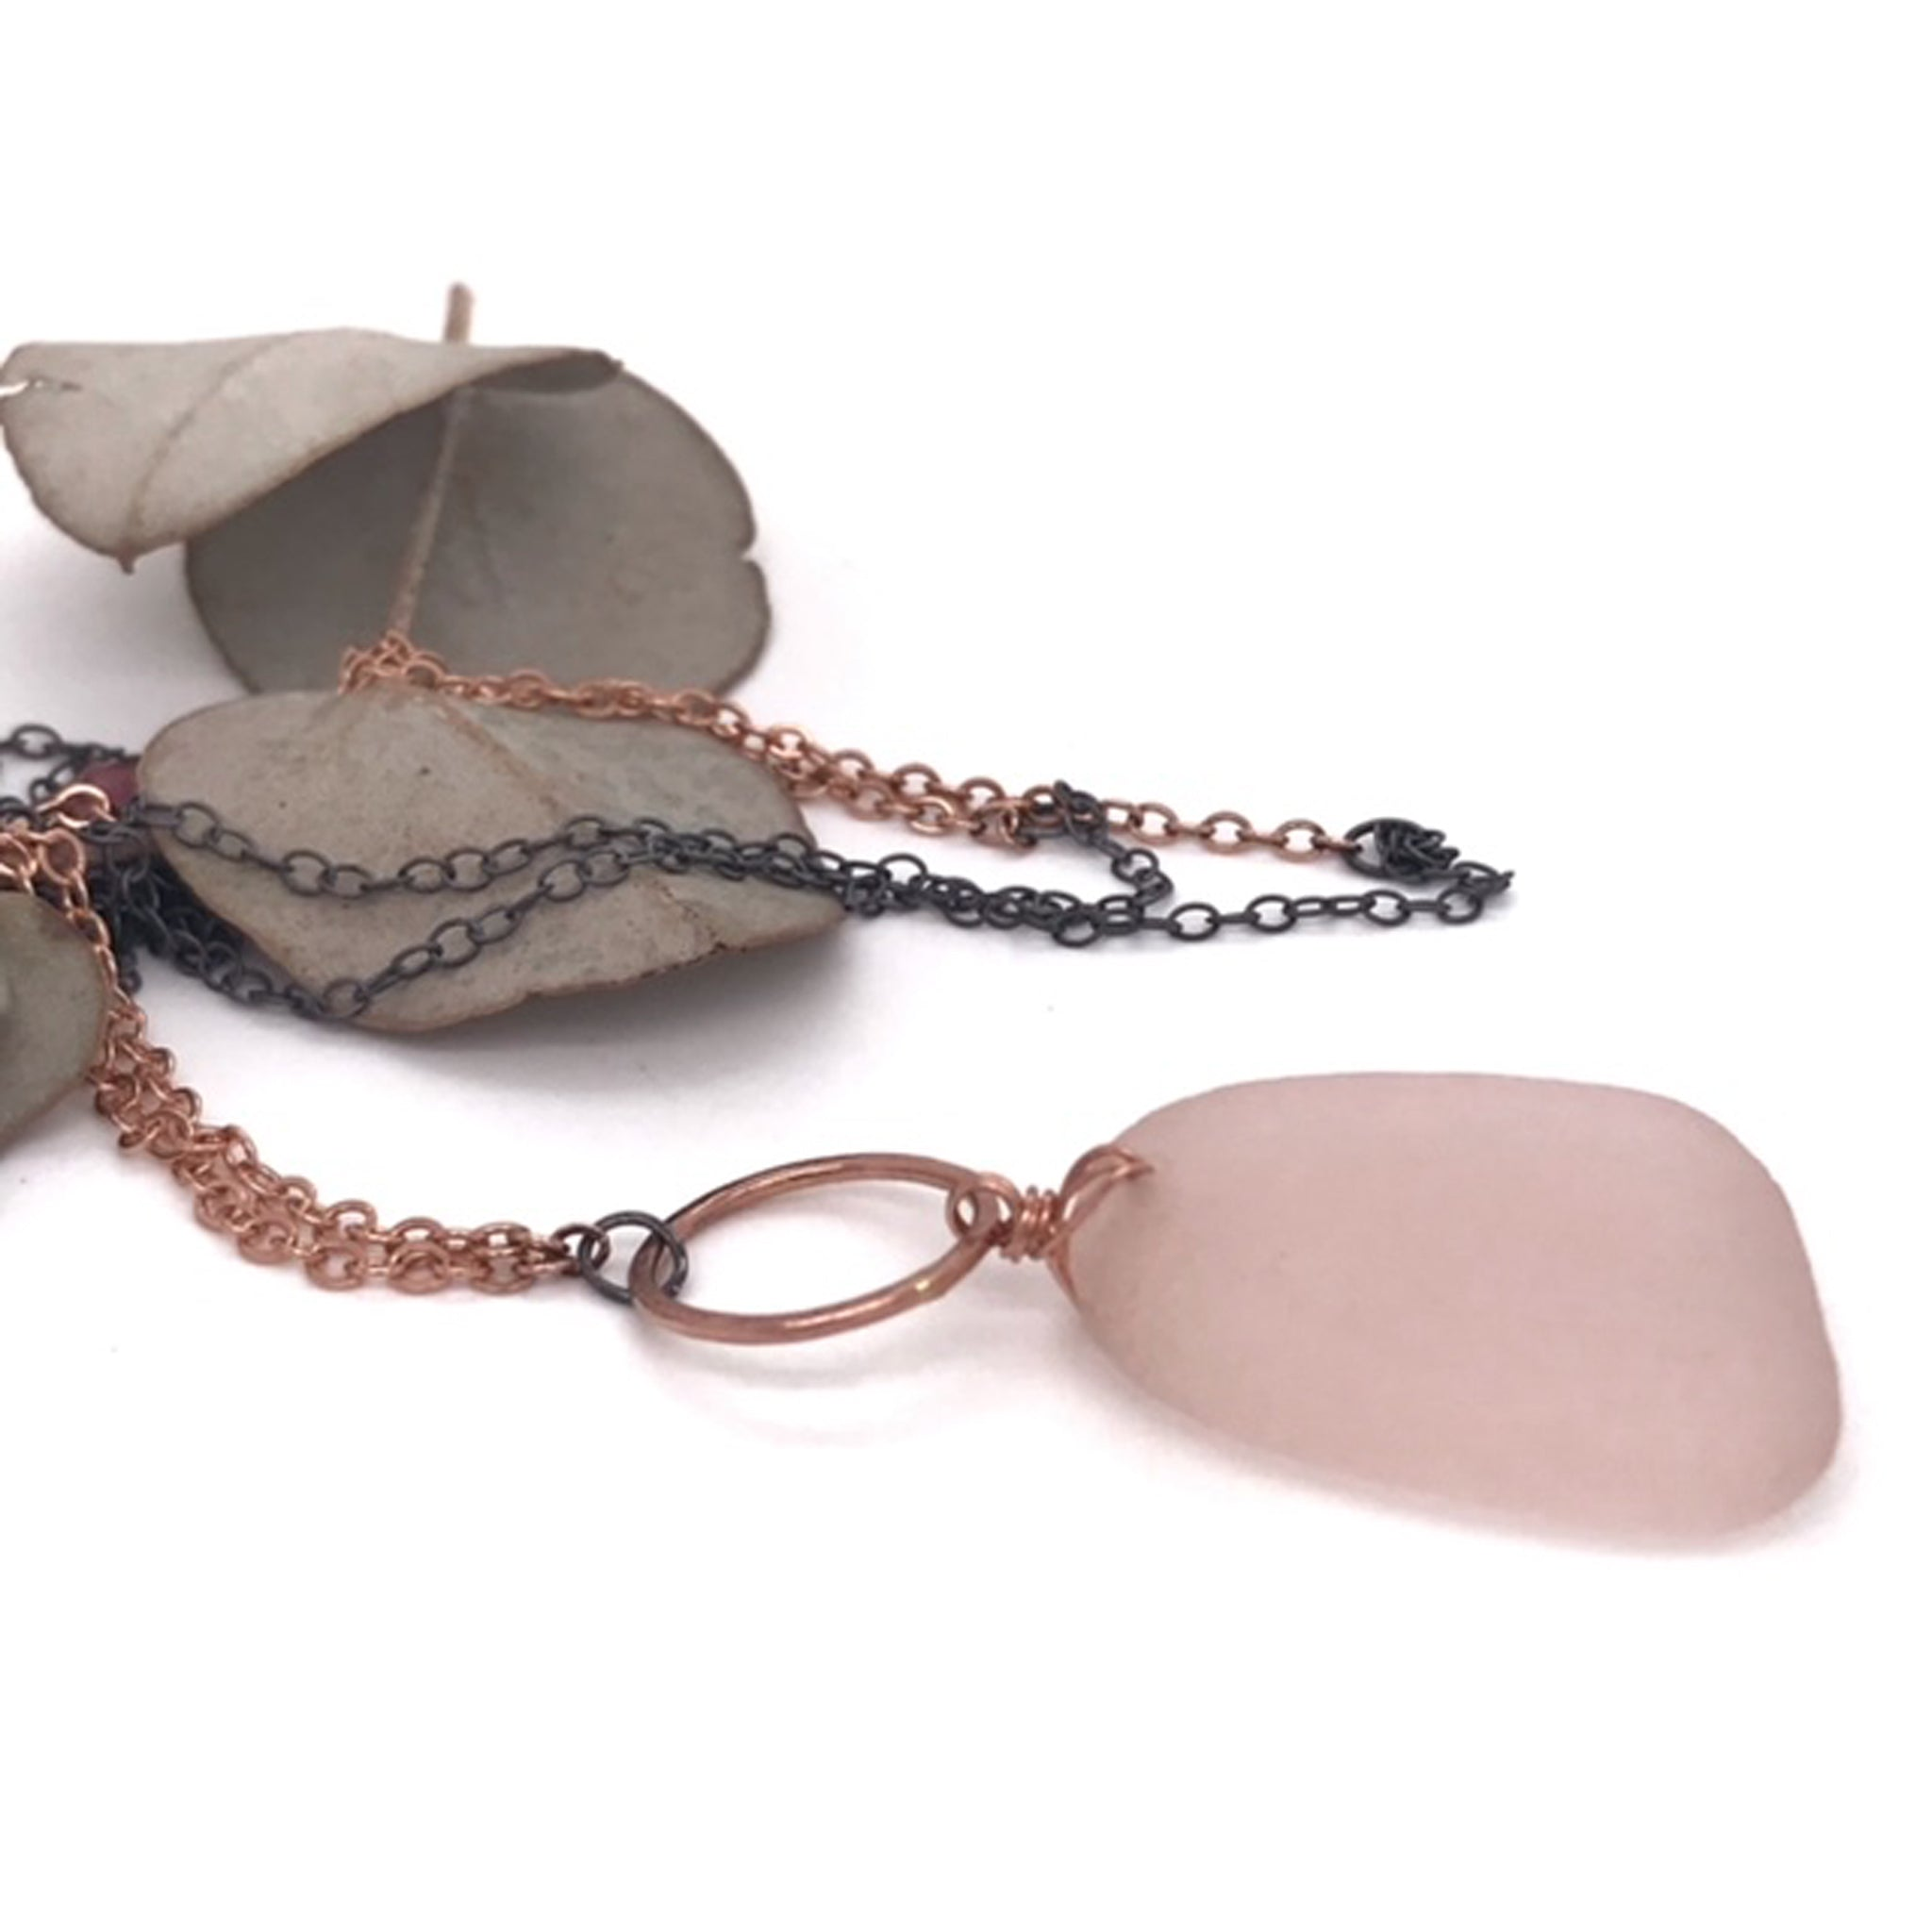 pink-seaglass-necklace-with-14k-rose-gold-ring-detail-and-oxidised-silver-chain-kriket-broadhurst-jewellery-Christmas